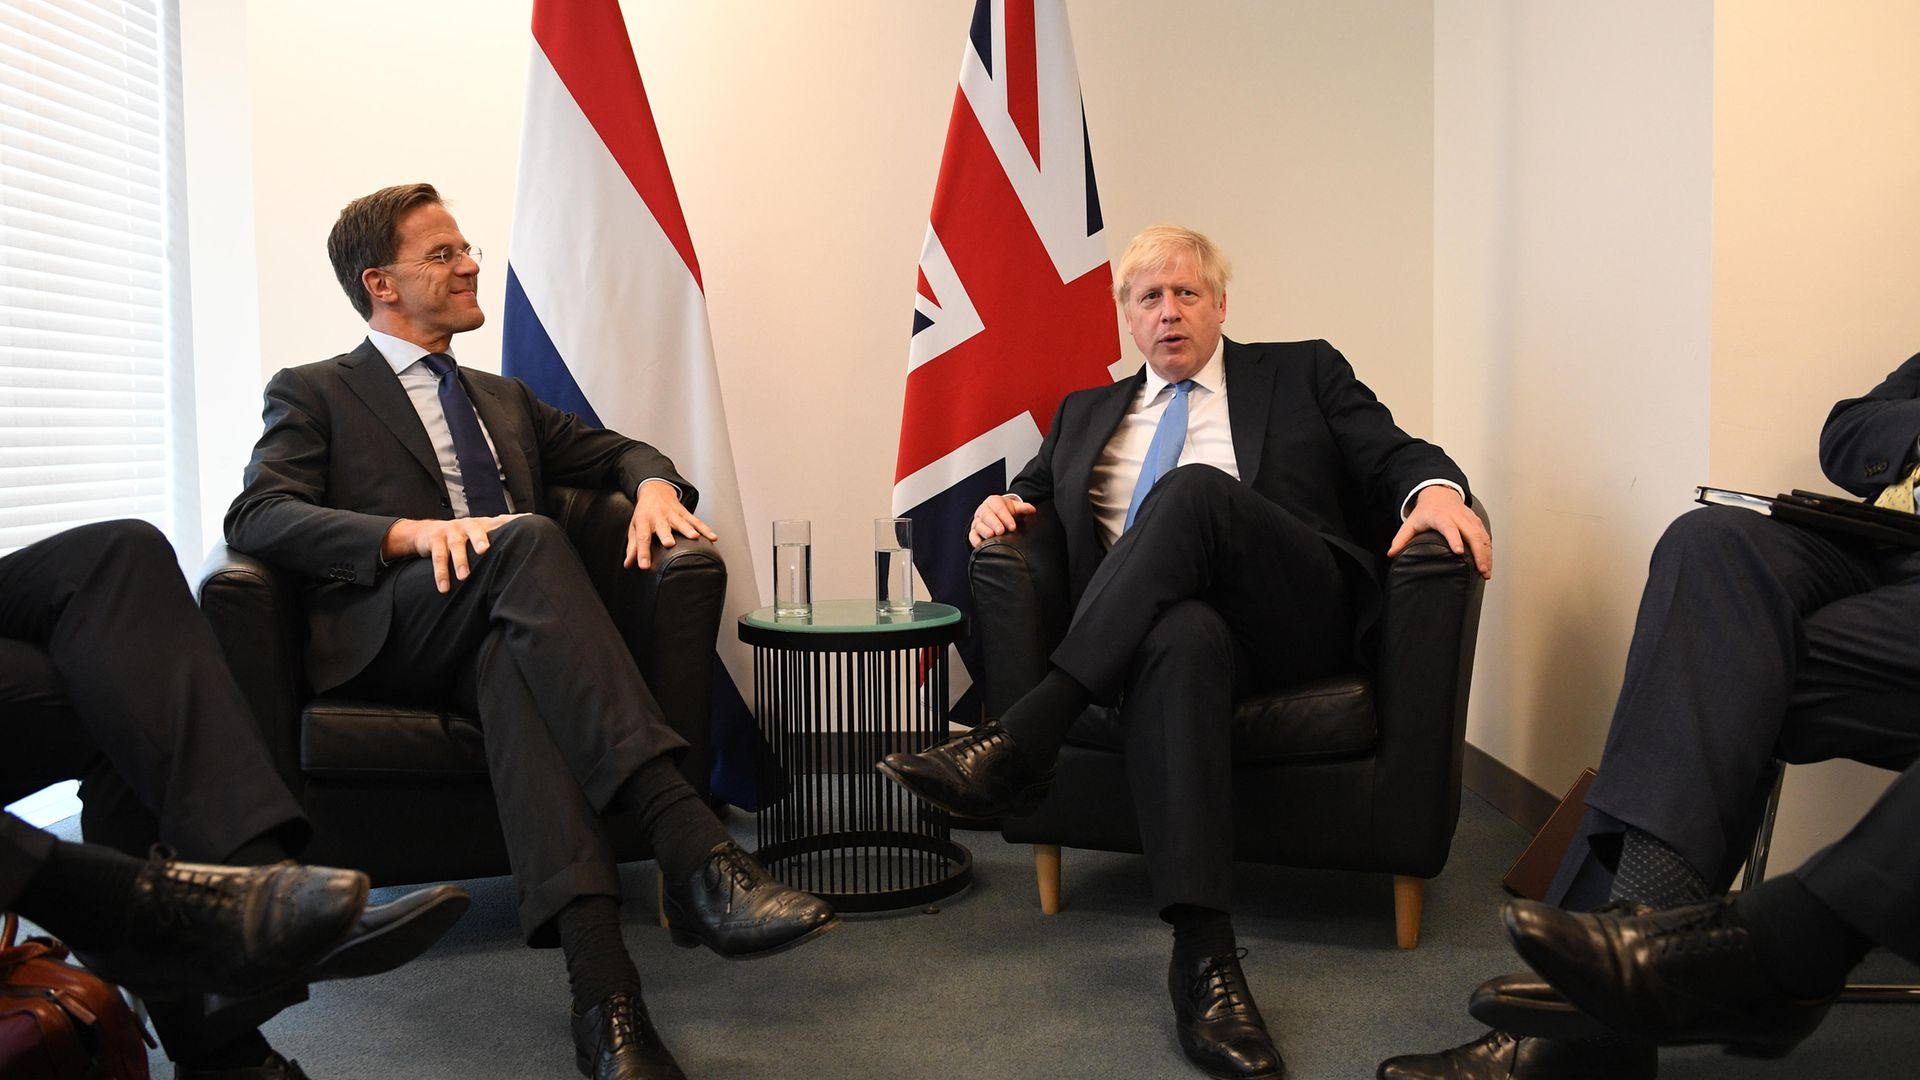 Boris Johnson (right) meets Mark Rutte at the 74th Session of the UN General Assembly - Credit: PA